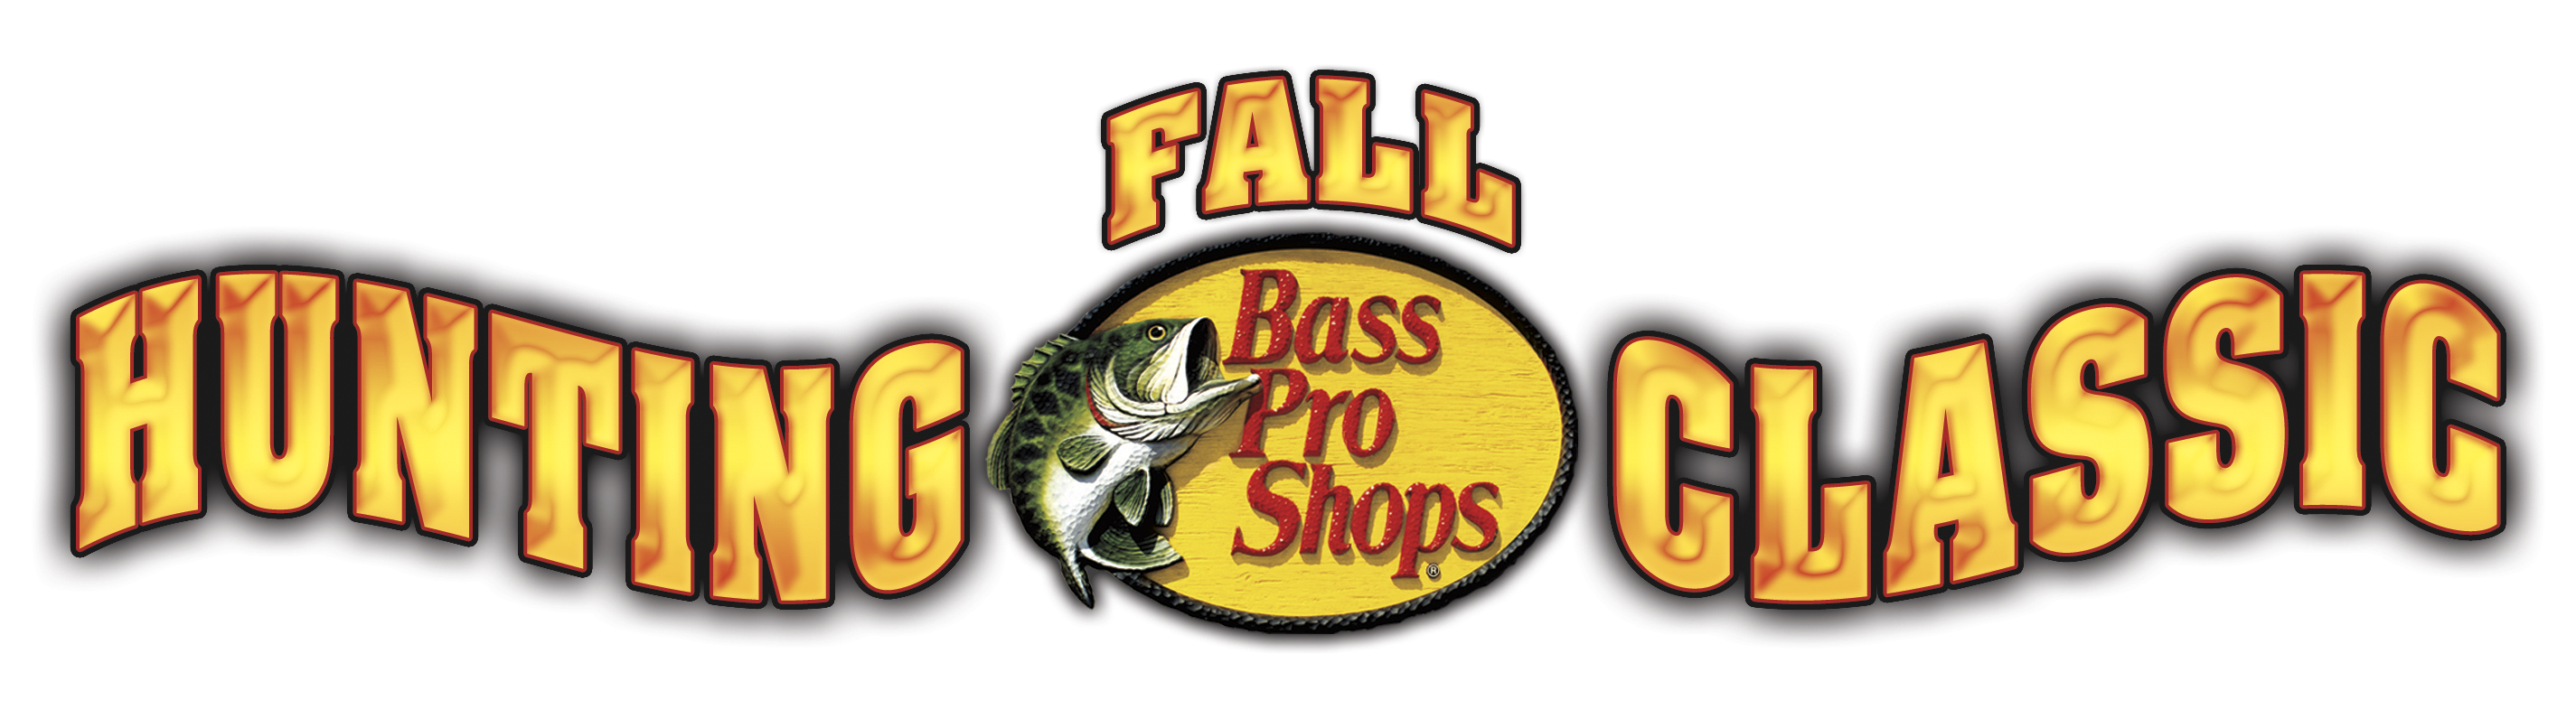 Fall Hunting Classic to begin Aug. 1 at Bass Pro Shops Stores throughout the U.S. and Canada